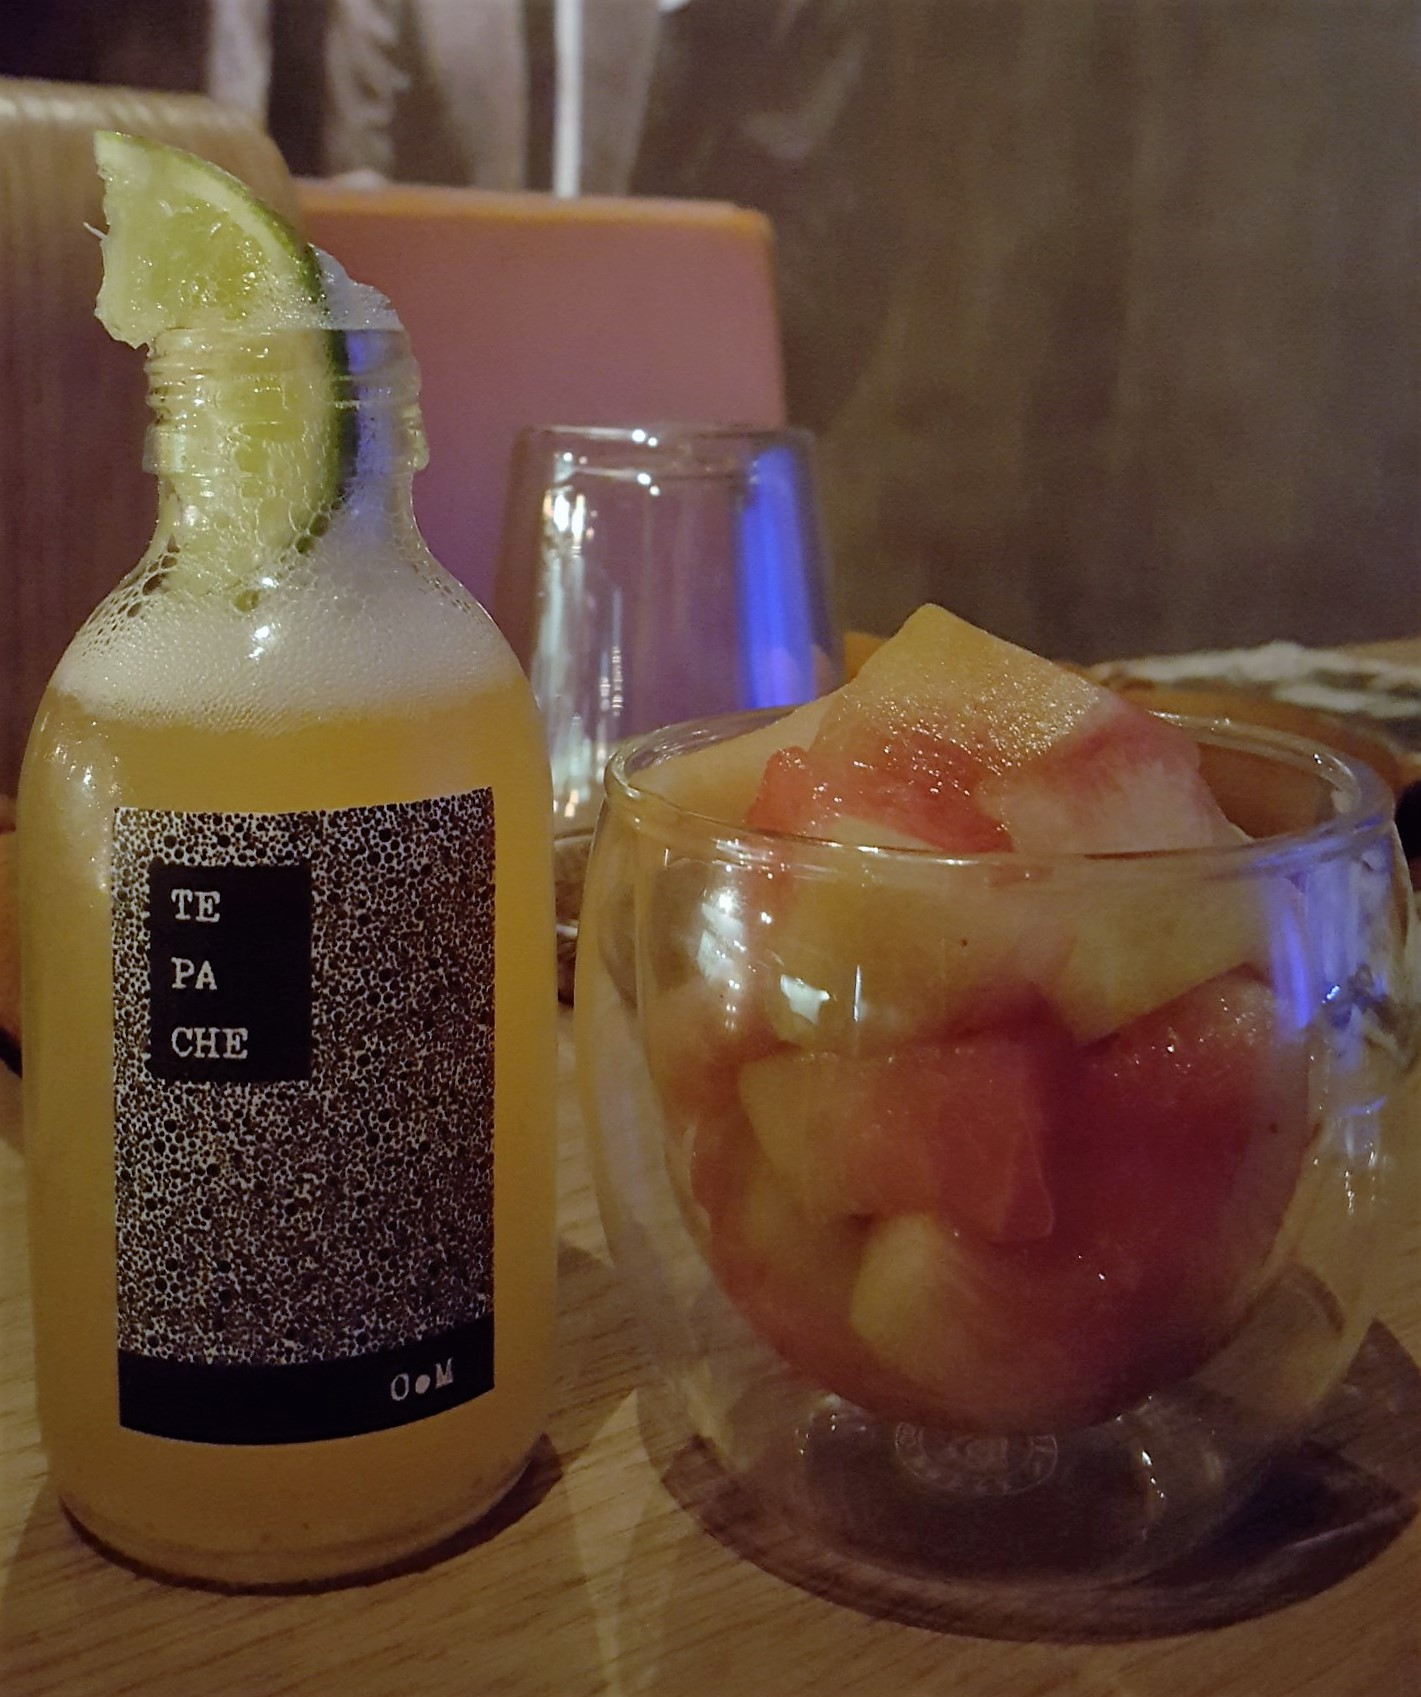 Tepache: 7 day fermented pineapple beer, served with pickled watermelon rind